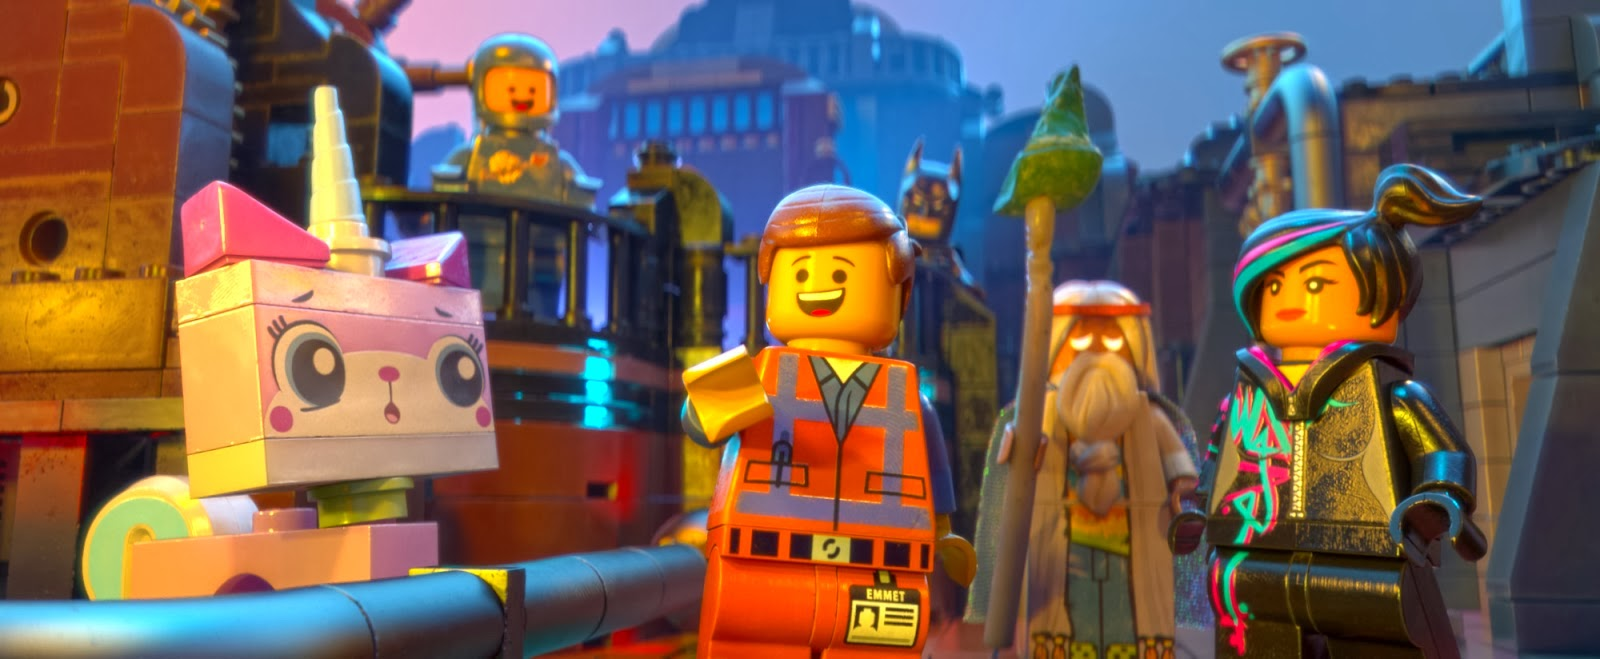 The Lego Movie Review Film Is Hilarious Inventive Should Not Tee Boldly Addresses This In Fashion Its Arrival To Theaters Week Will Have You Stitches While Conjuring Real Reason Why